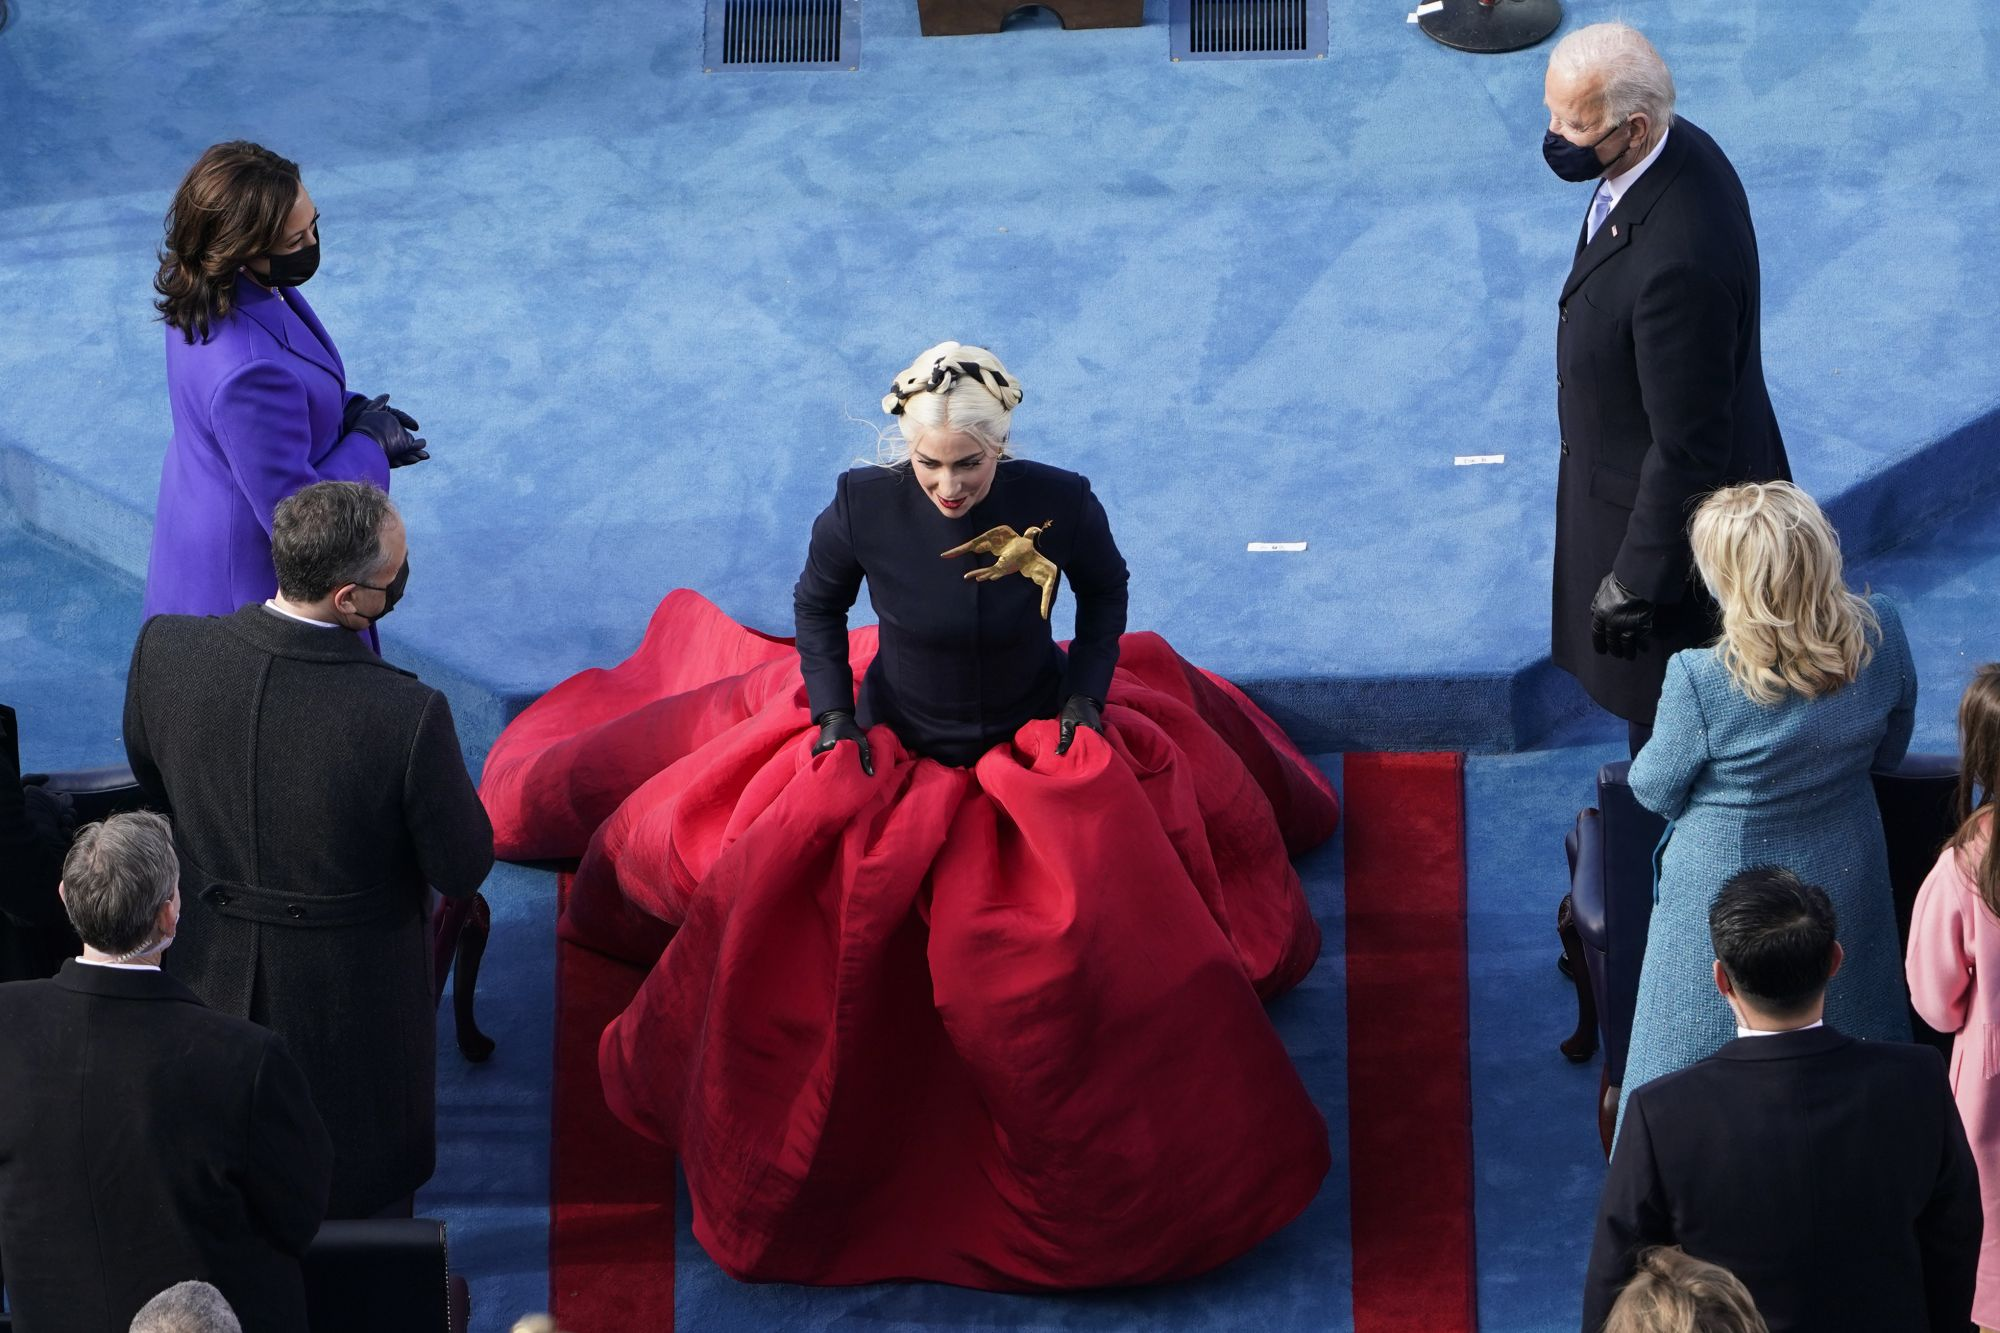 WASHINGTON, DC - JANUARY 20: President-elect Joe Biden and Vice President-elect Kamala Harris watch as Lady Gaga walks away during the 59th presidential inauguration on the West Front of the U.S. Capitol on January 20, 2021 in Washington, DC. During today's inauguration ceremony Joe Biden becomes the 46th president of the United States. (Photo by Susan Walsh - Pool/Getty Images)